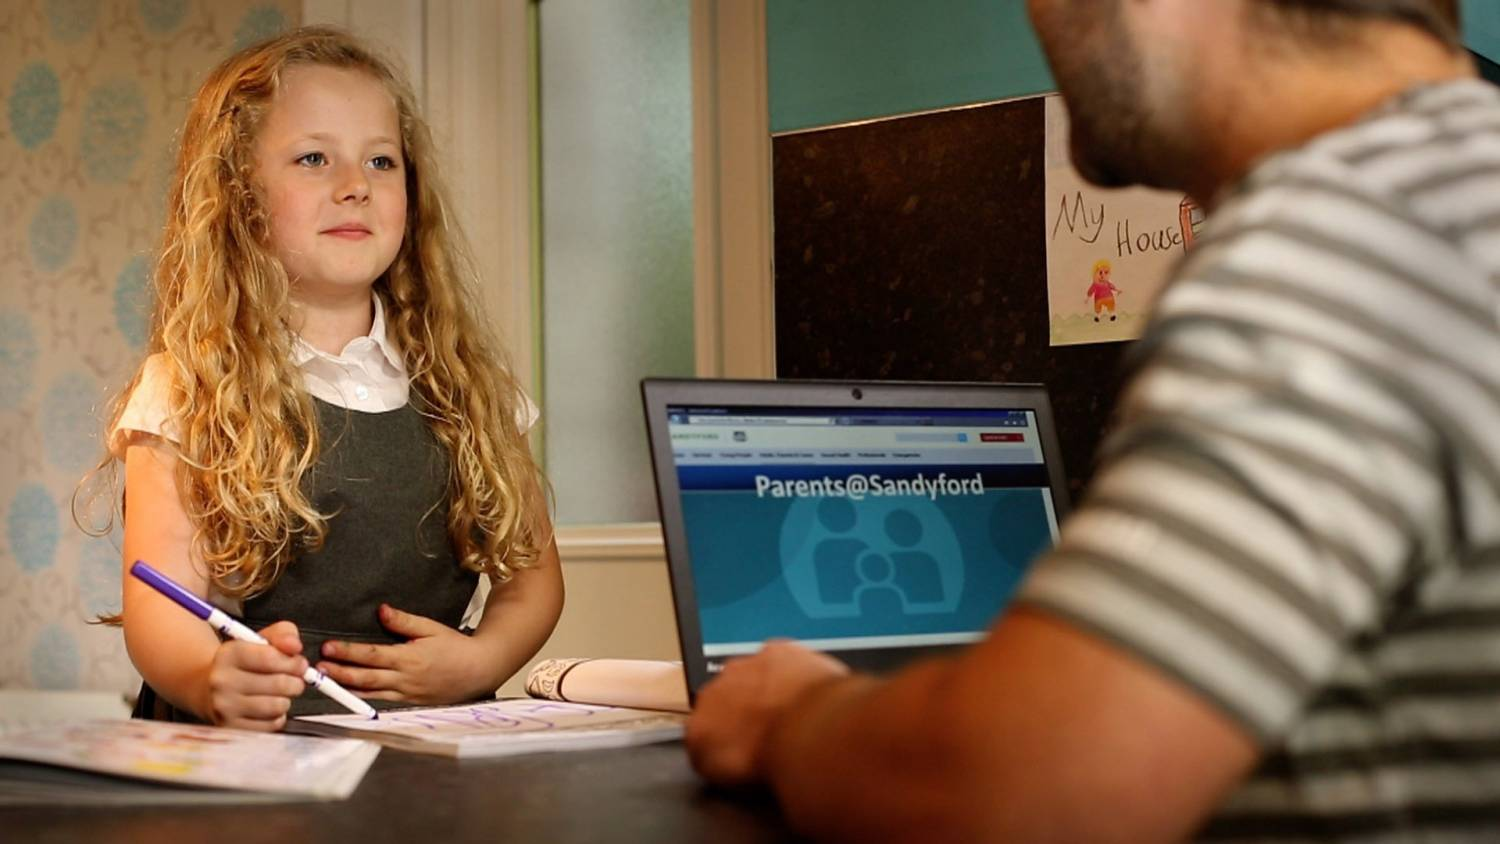 Parents @ Sandyford Makes it Easier to Talk to Your Kids About Growing Up